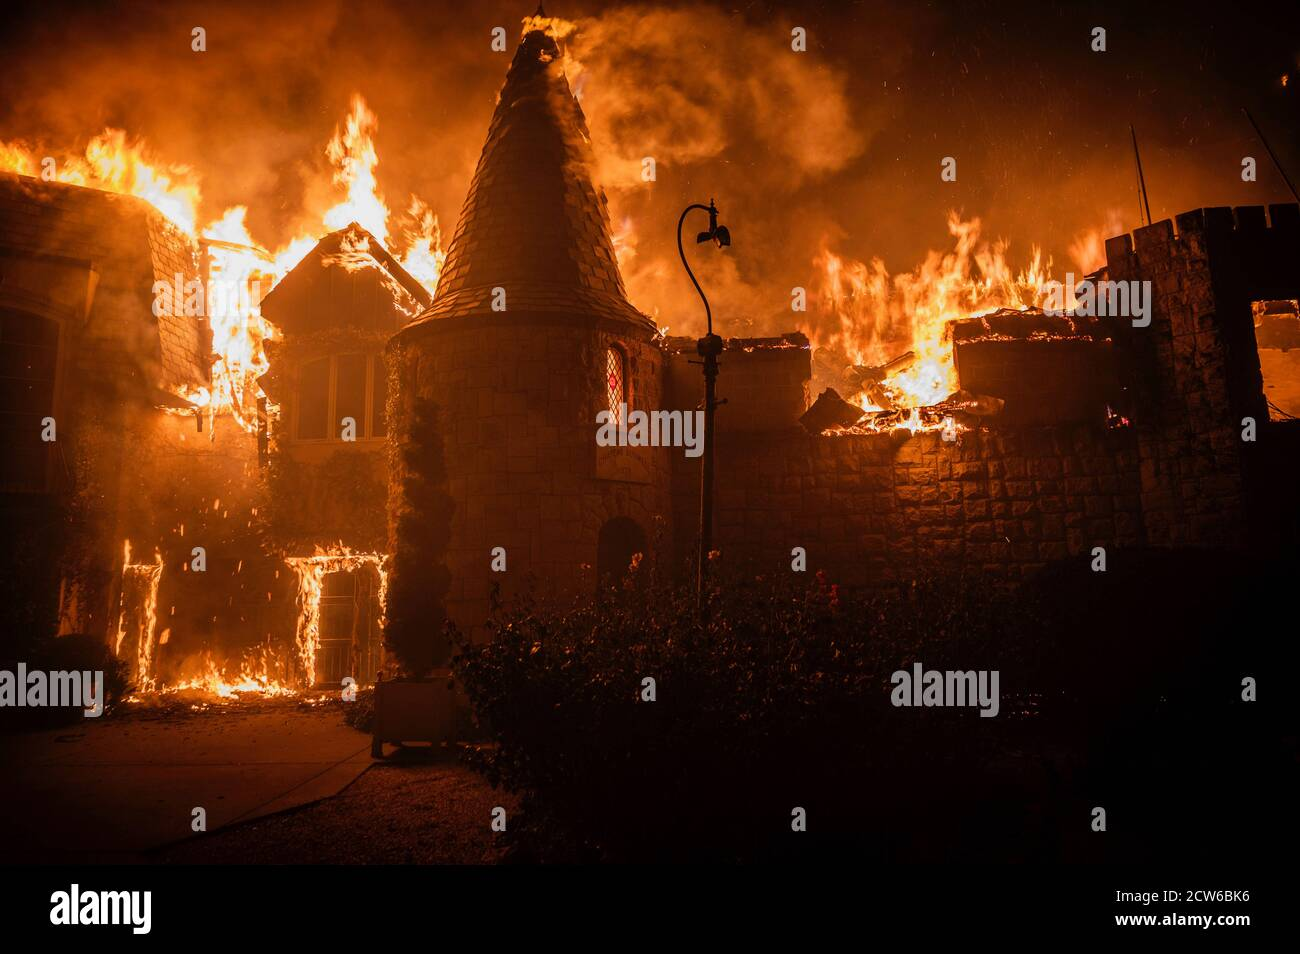 California, USA. 27th Sep, 2020. The Chateau Boswell winery goes up in flames as the Glass Fire burns along the Silverado Trail near St. Helena in the Napa Valley on Sunday night, Sept. 27, 2020. Credit: Daniel Kim/Sacramento Bee/ZUMA Wire/Alamy Live News Stock Photo